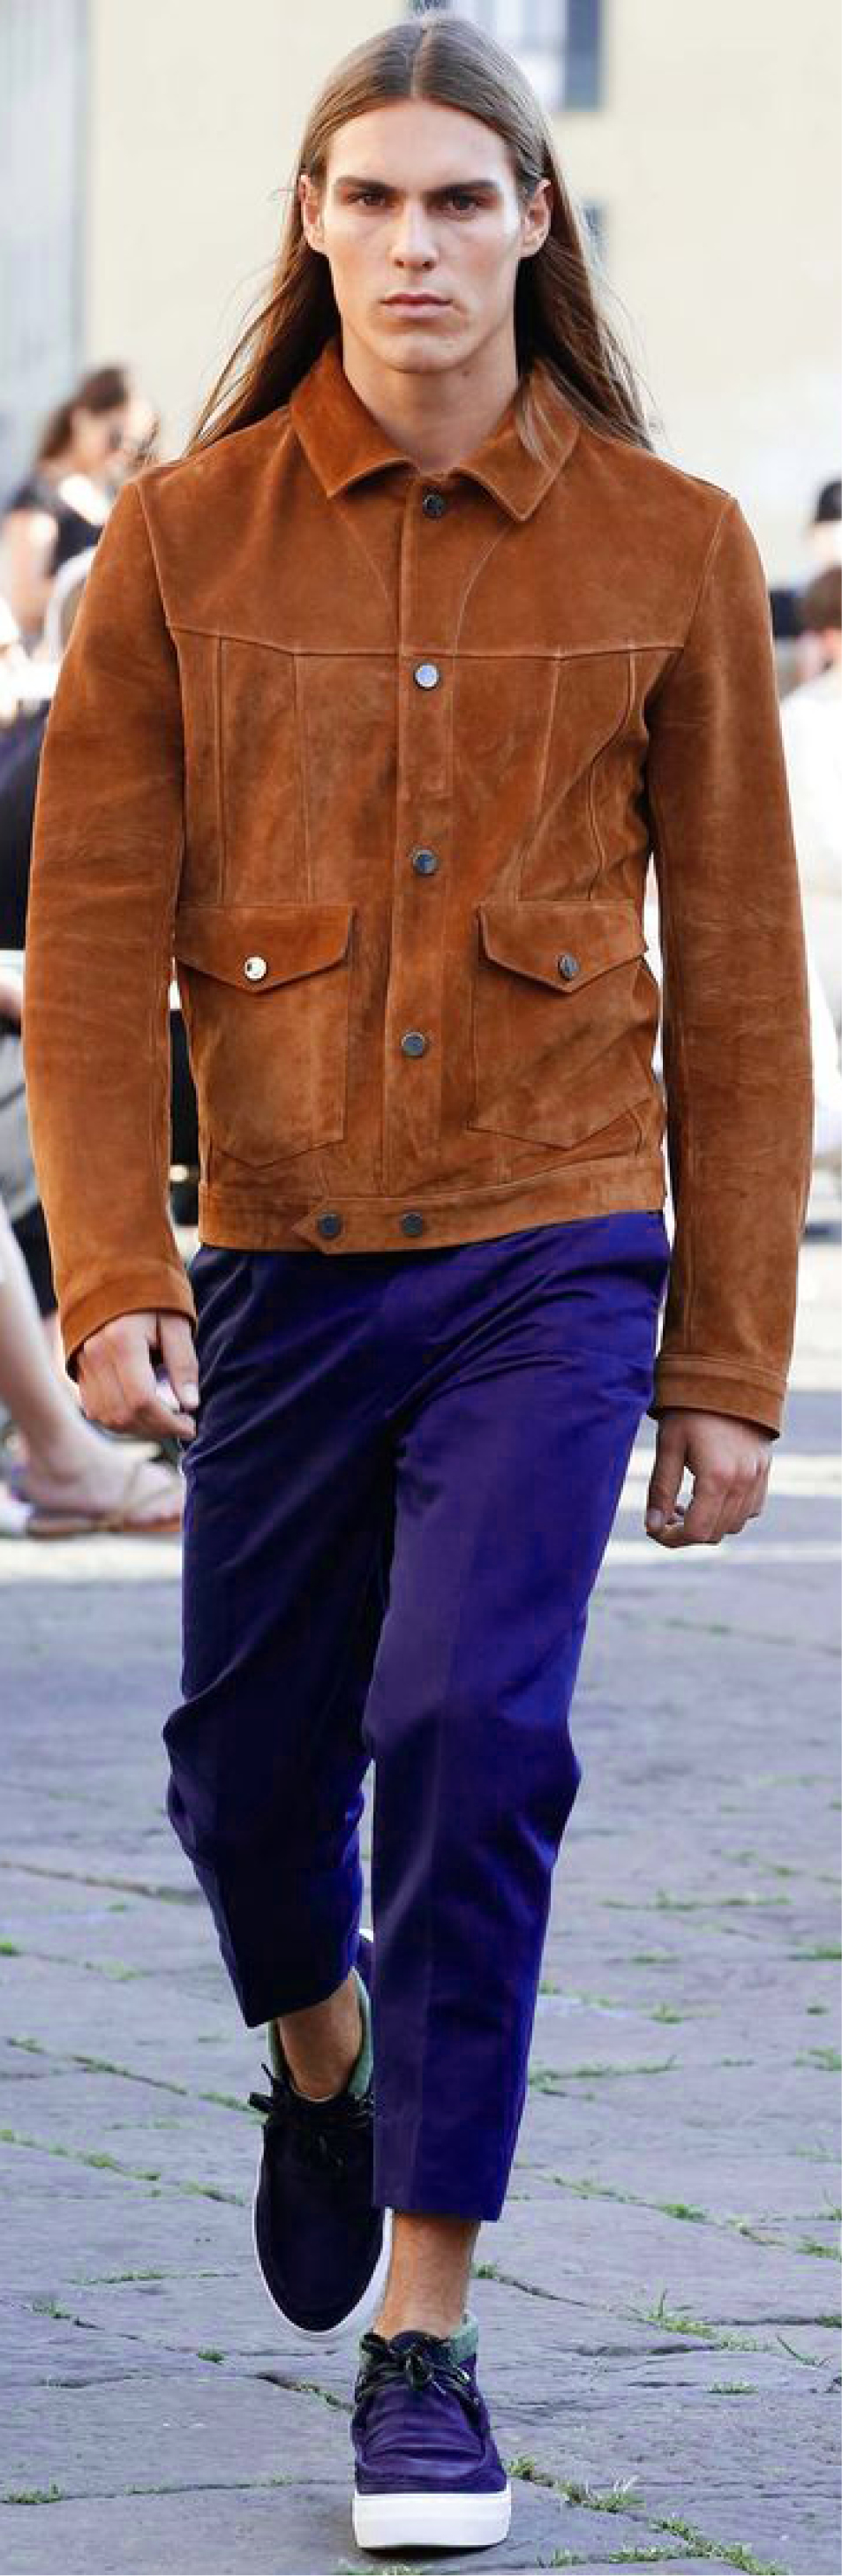 Suede jacket for a hippie chic look - Ports 1961 SS16 - Inspiration for our SS2017 Menswear trendbook